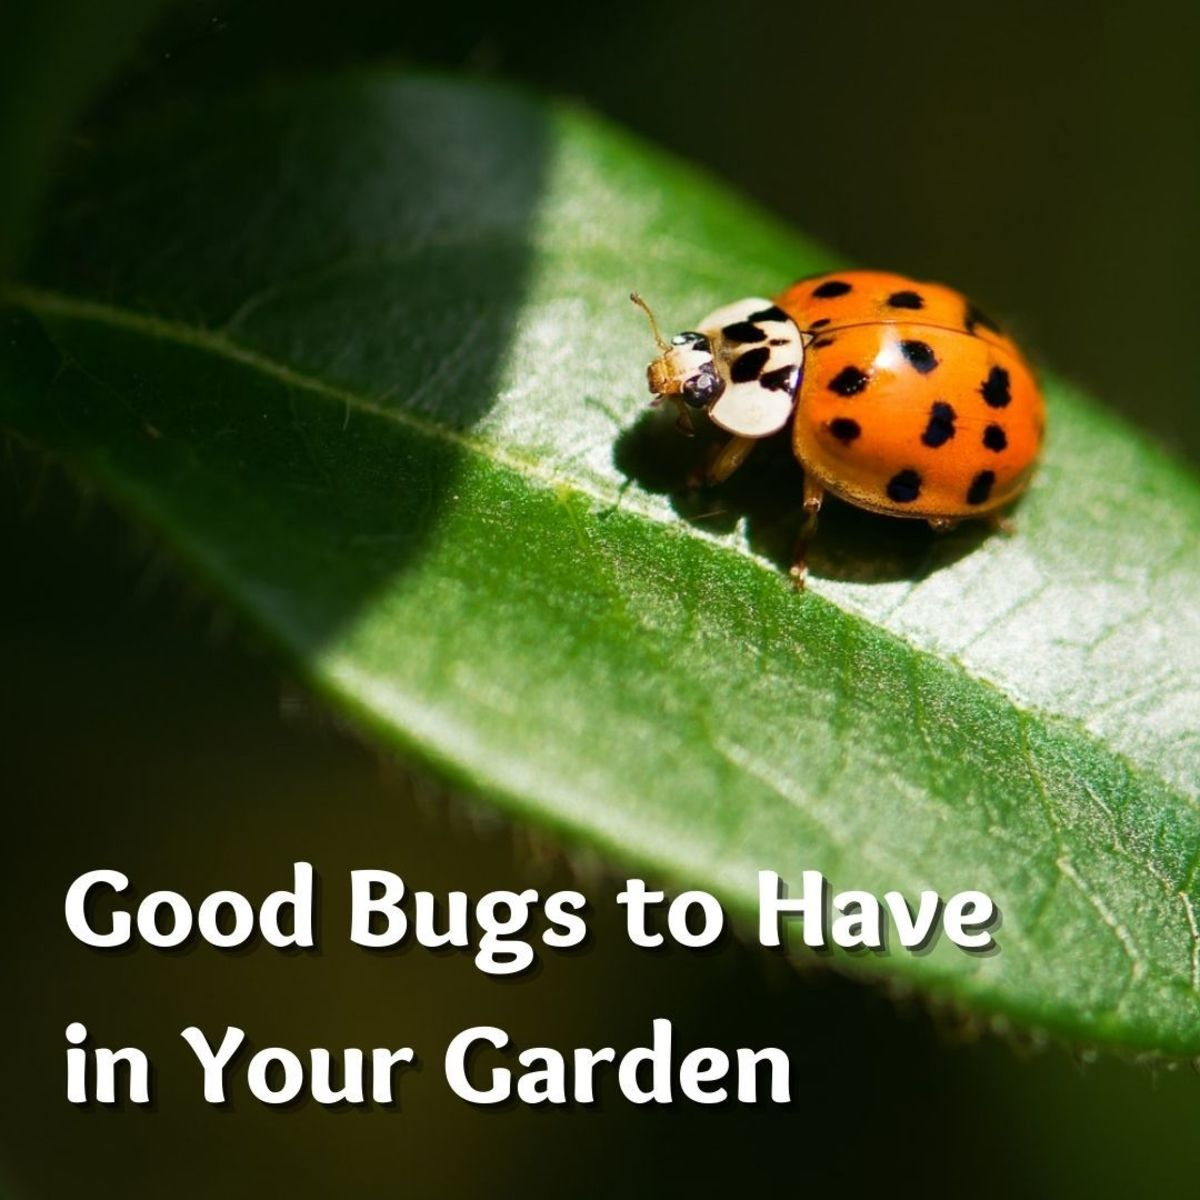 A healthy garden is a mini-ecosystem where beneficial insects, birds, bats, toads and other animals provide natural biological controls against many common pests.